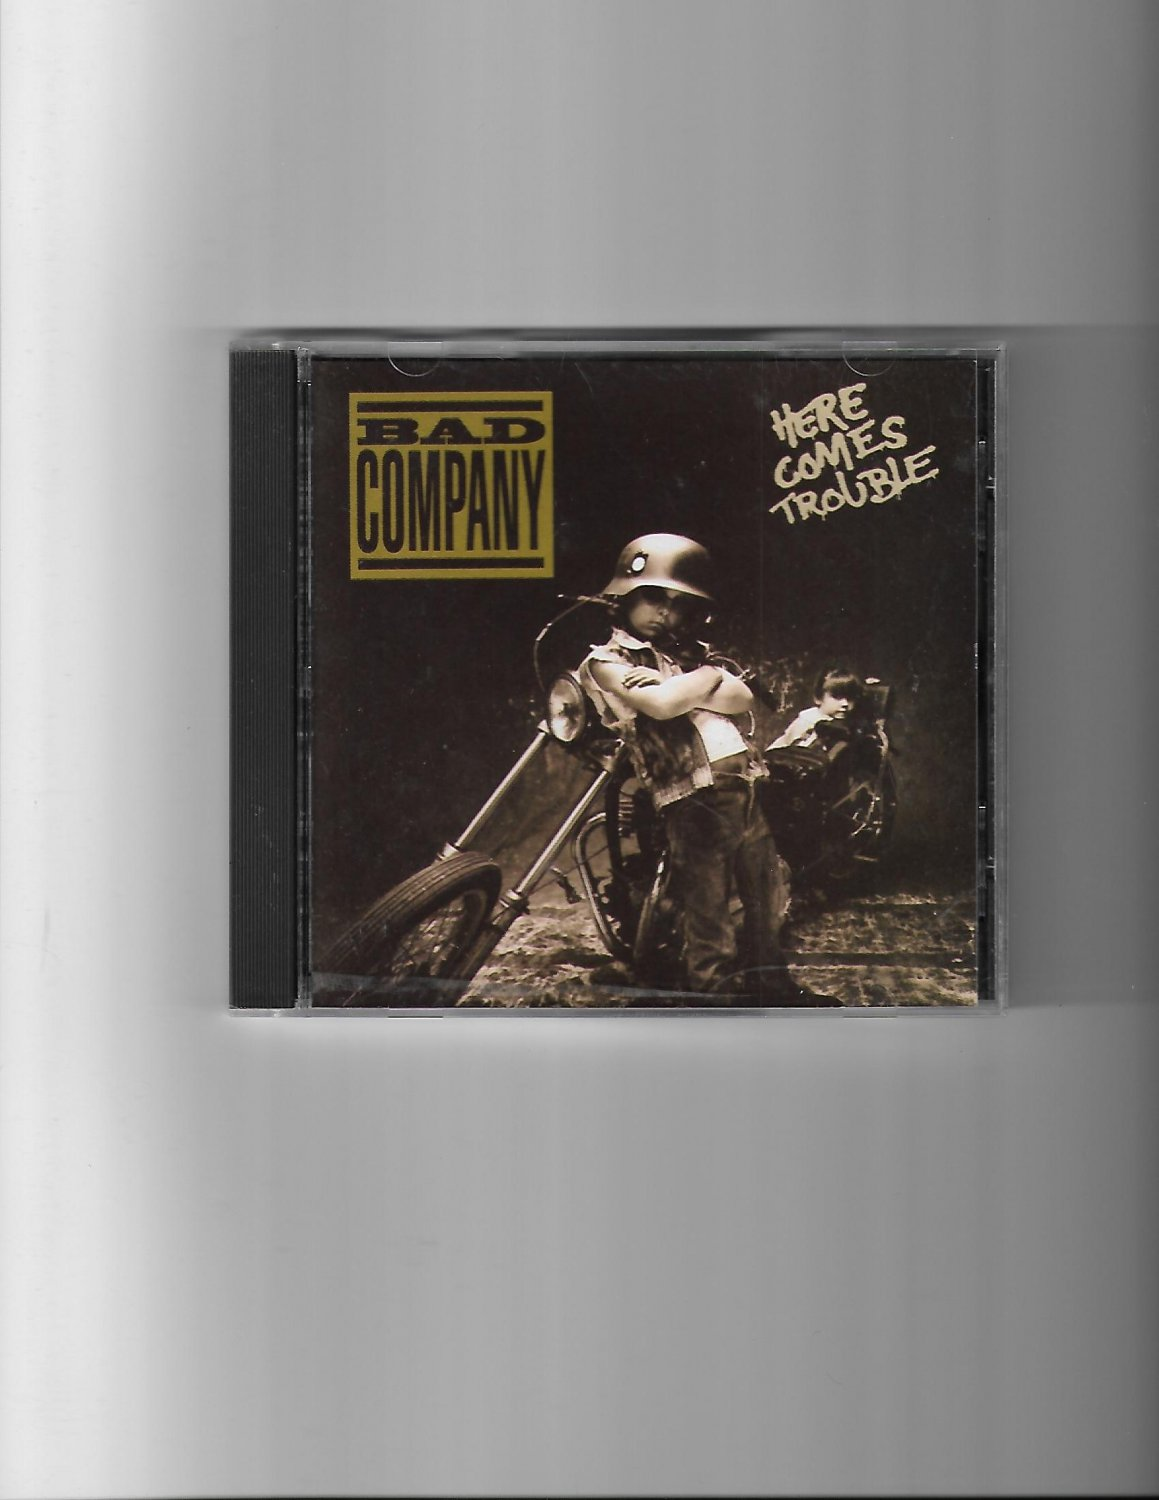 BAD COMPANY HERE COMES TROUBLE CD